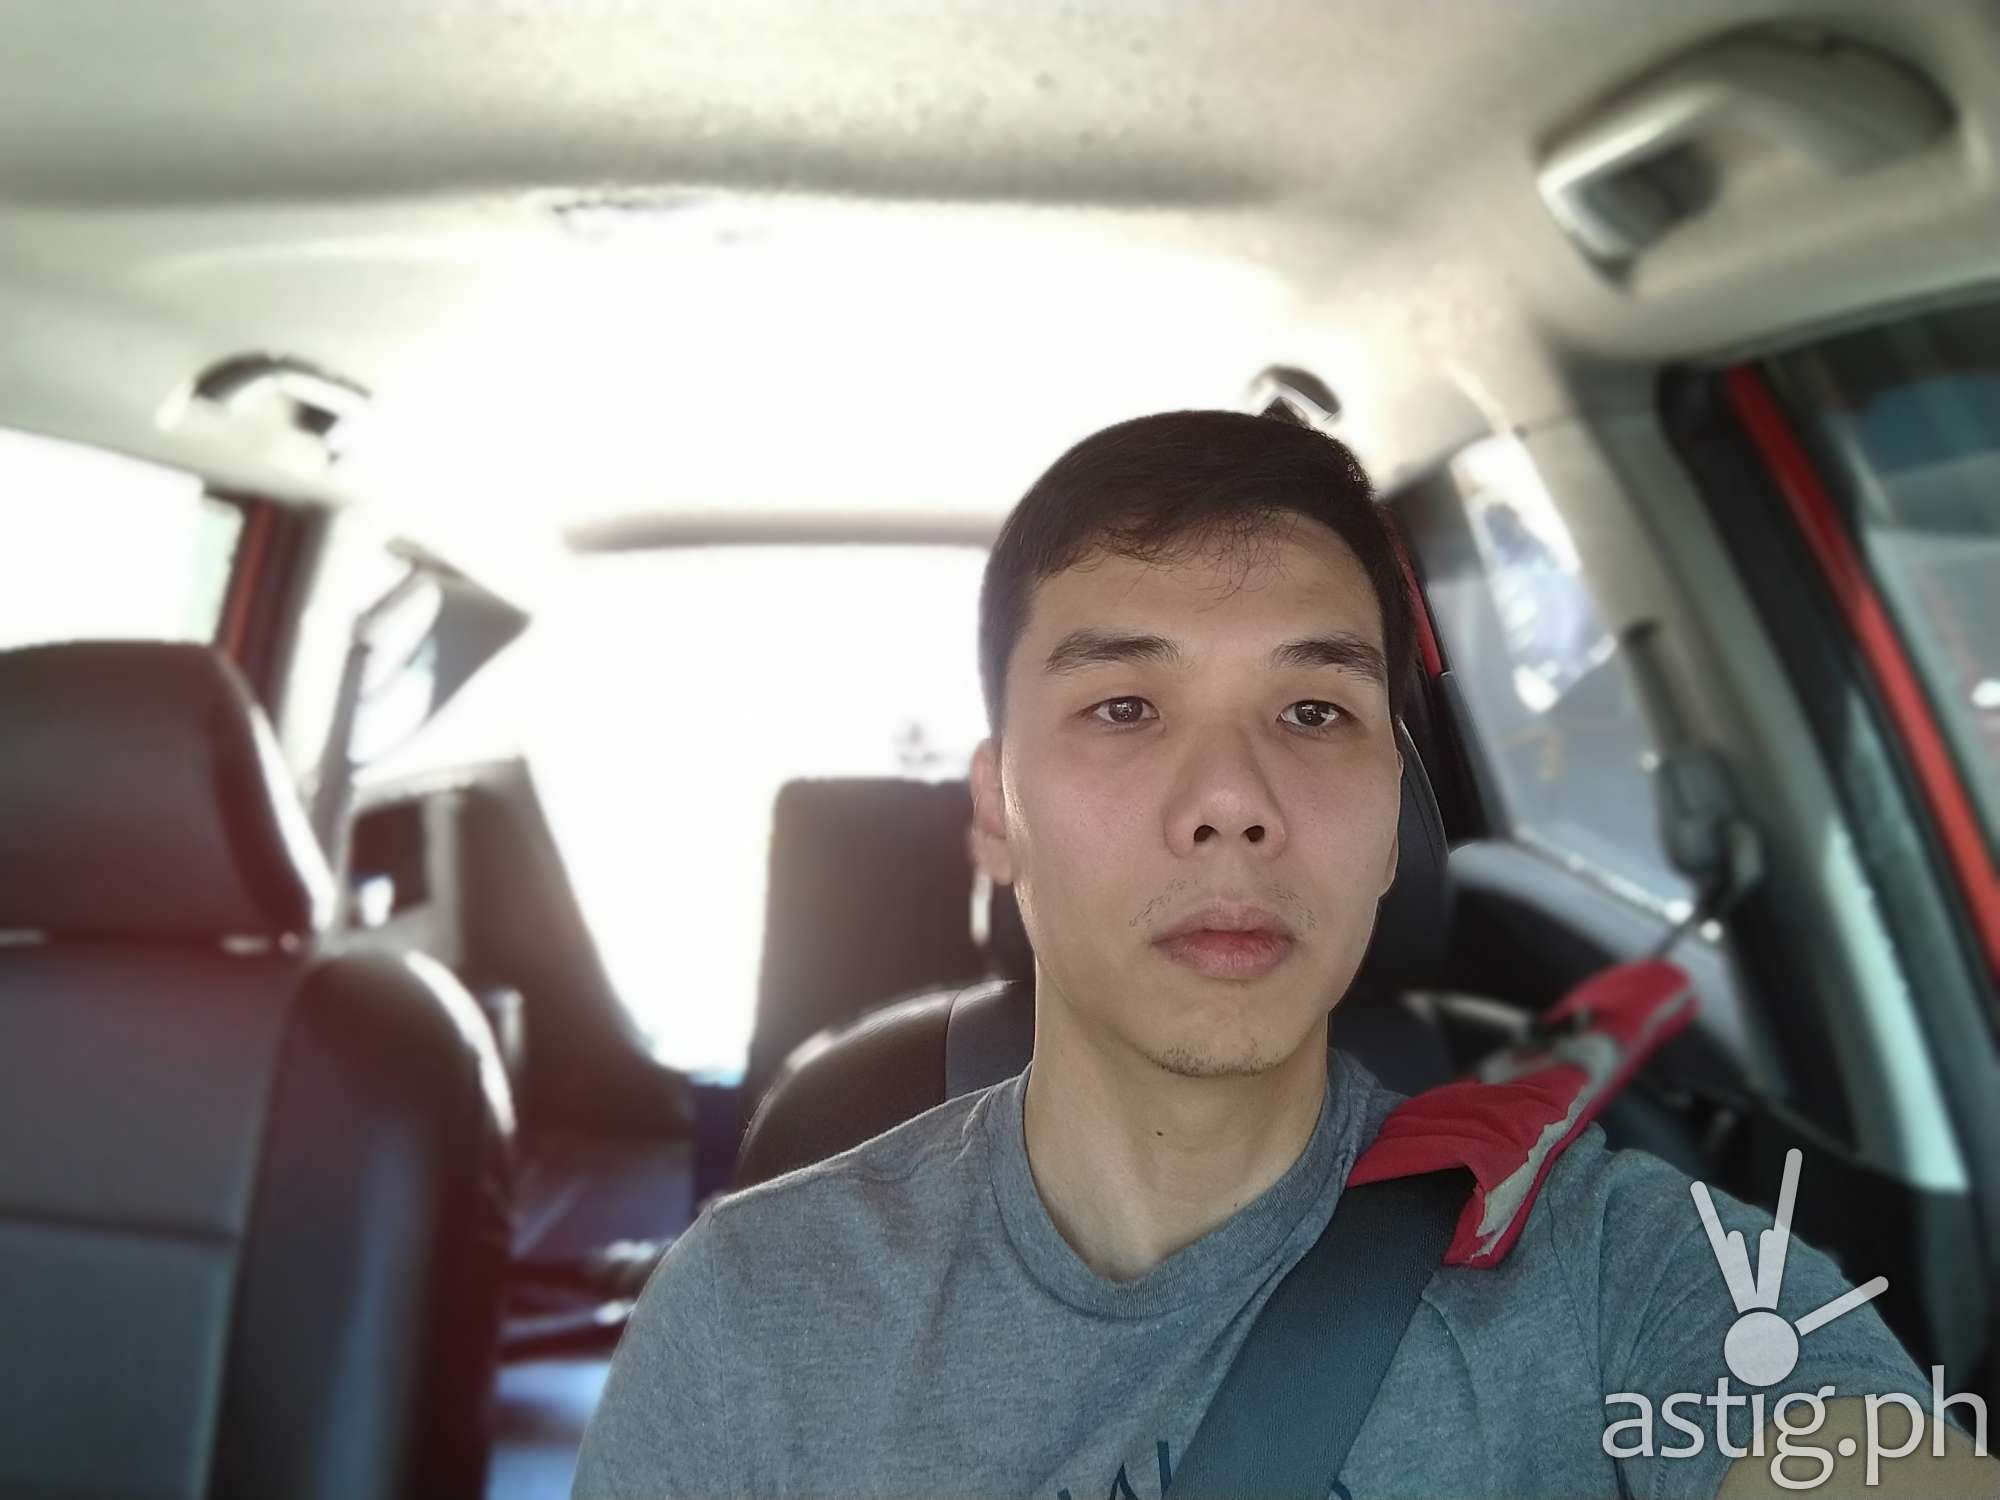 Selfie daylight - ASUS Zenfone Max Pro M1 sample photo